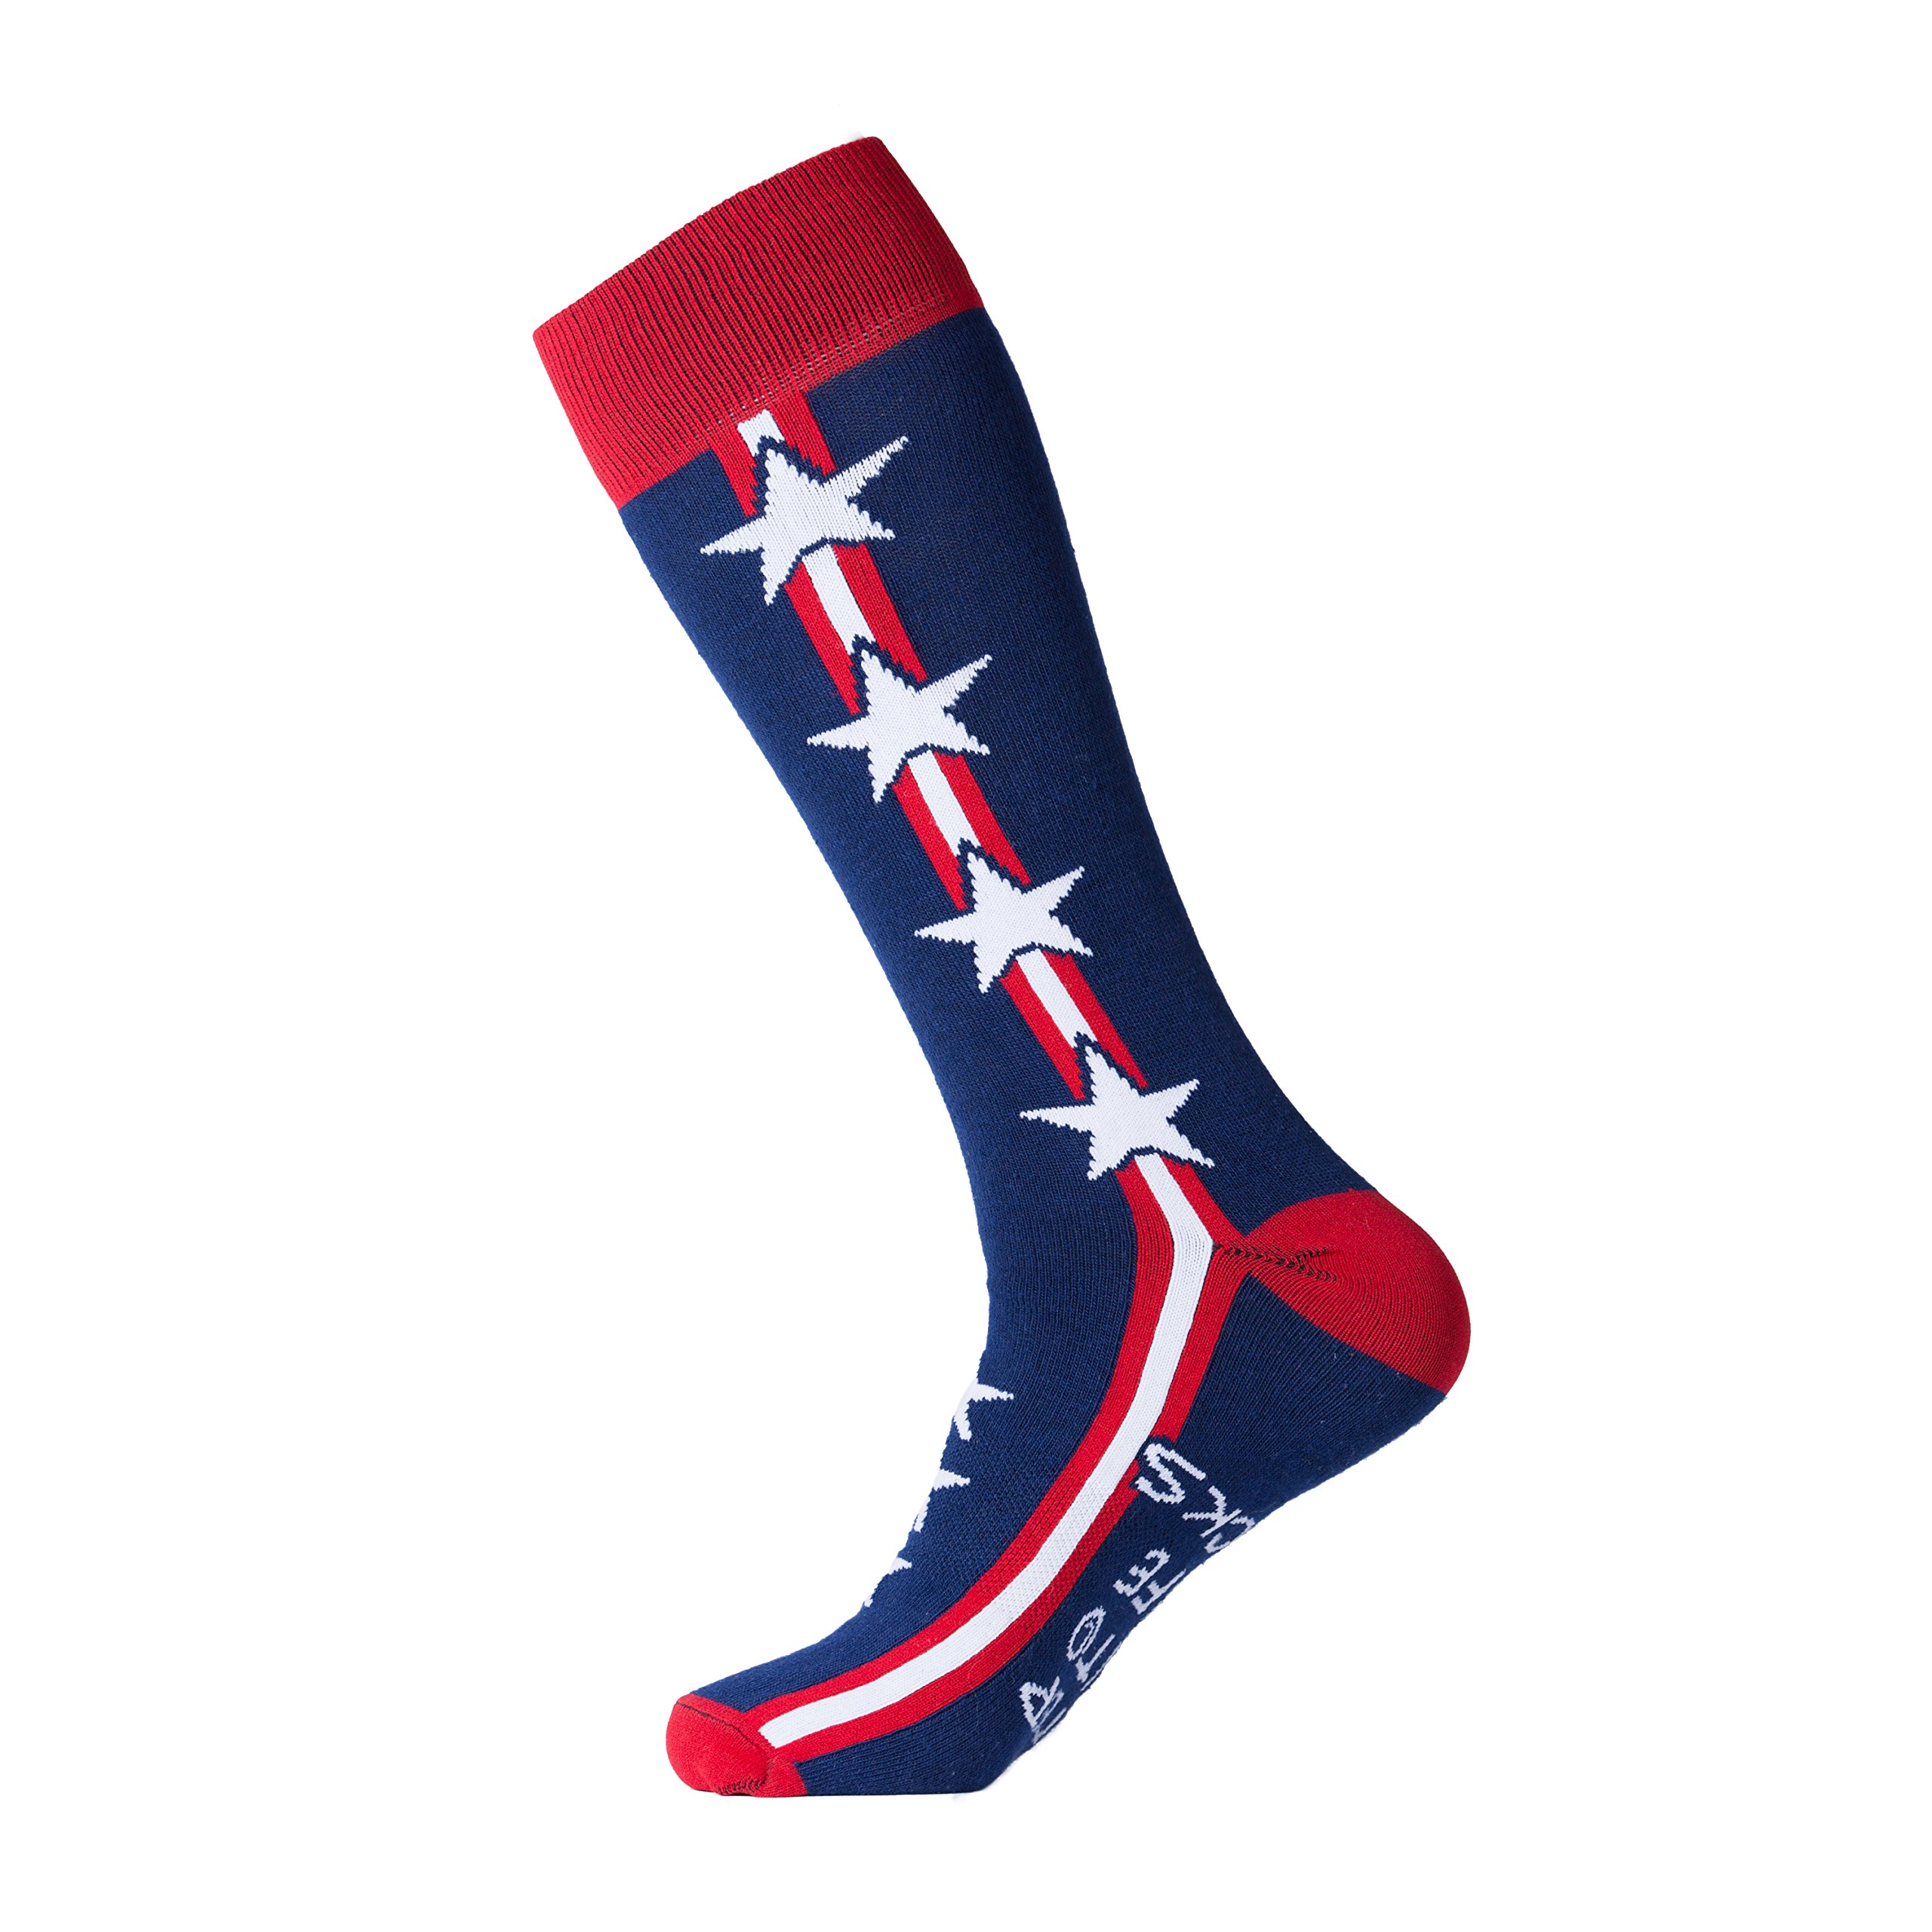 Men's Socks Patriot by Step Into Life American Made Combed Cotton Stylish Pattern Fun Business Casual Funky